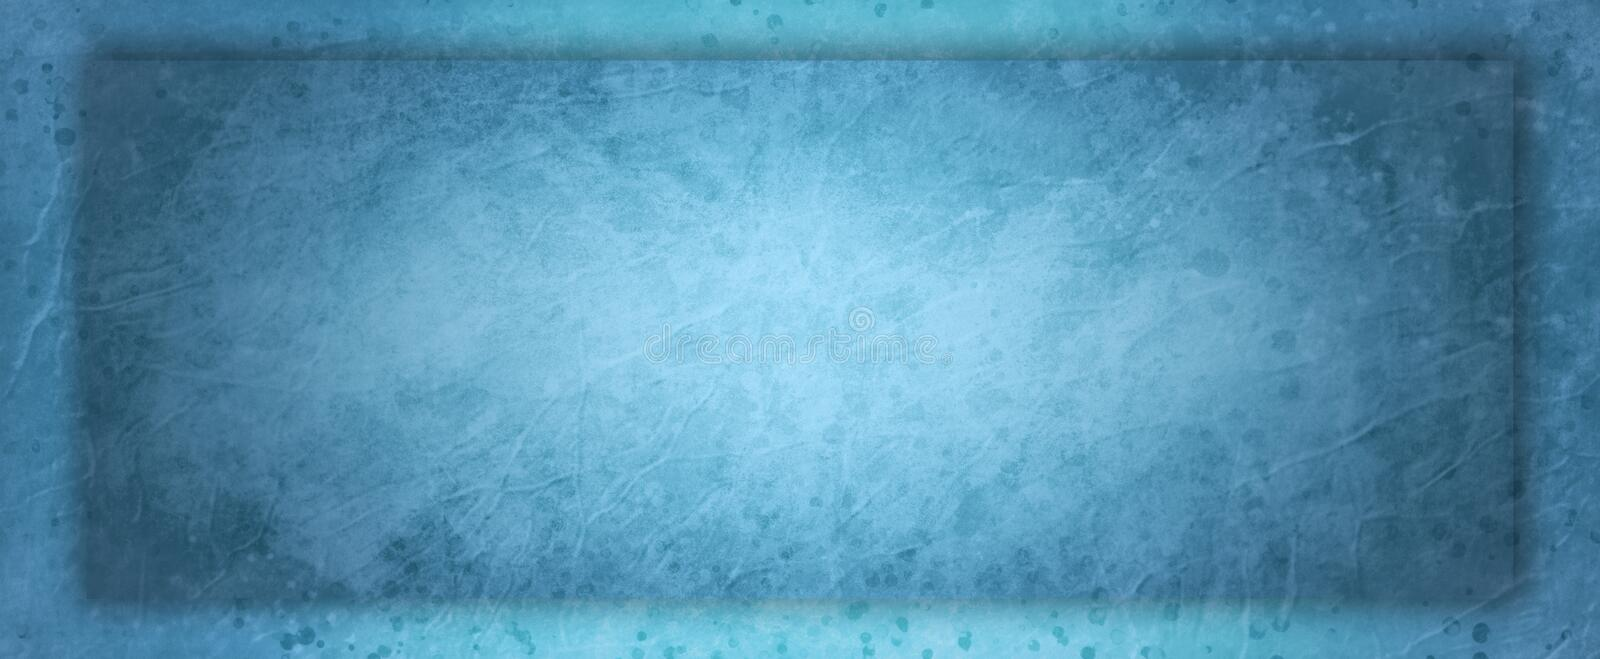 Blue background with old vintage grunge texture and paint spatter drips and drops with 3d shadow rectangle border frame royalty free illustration